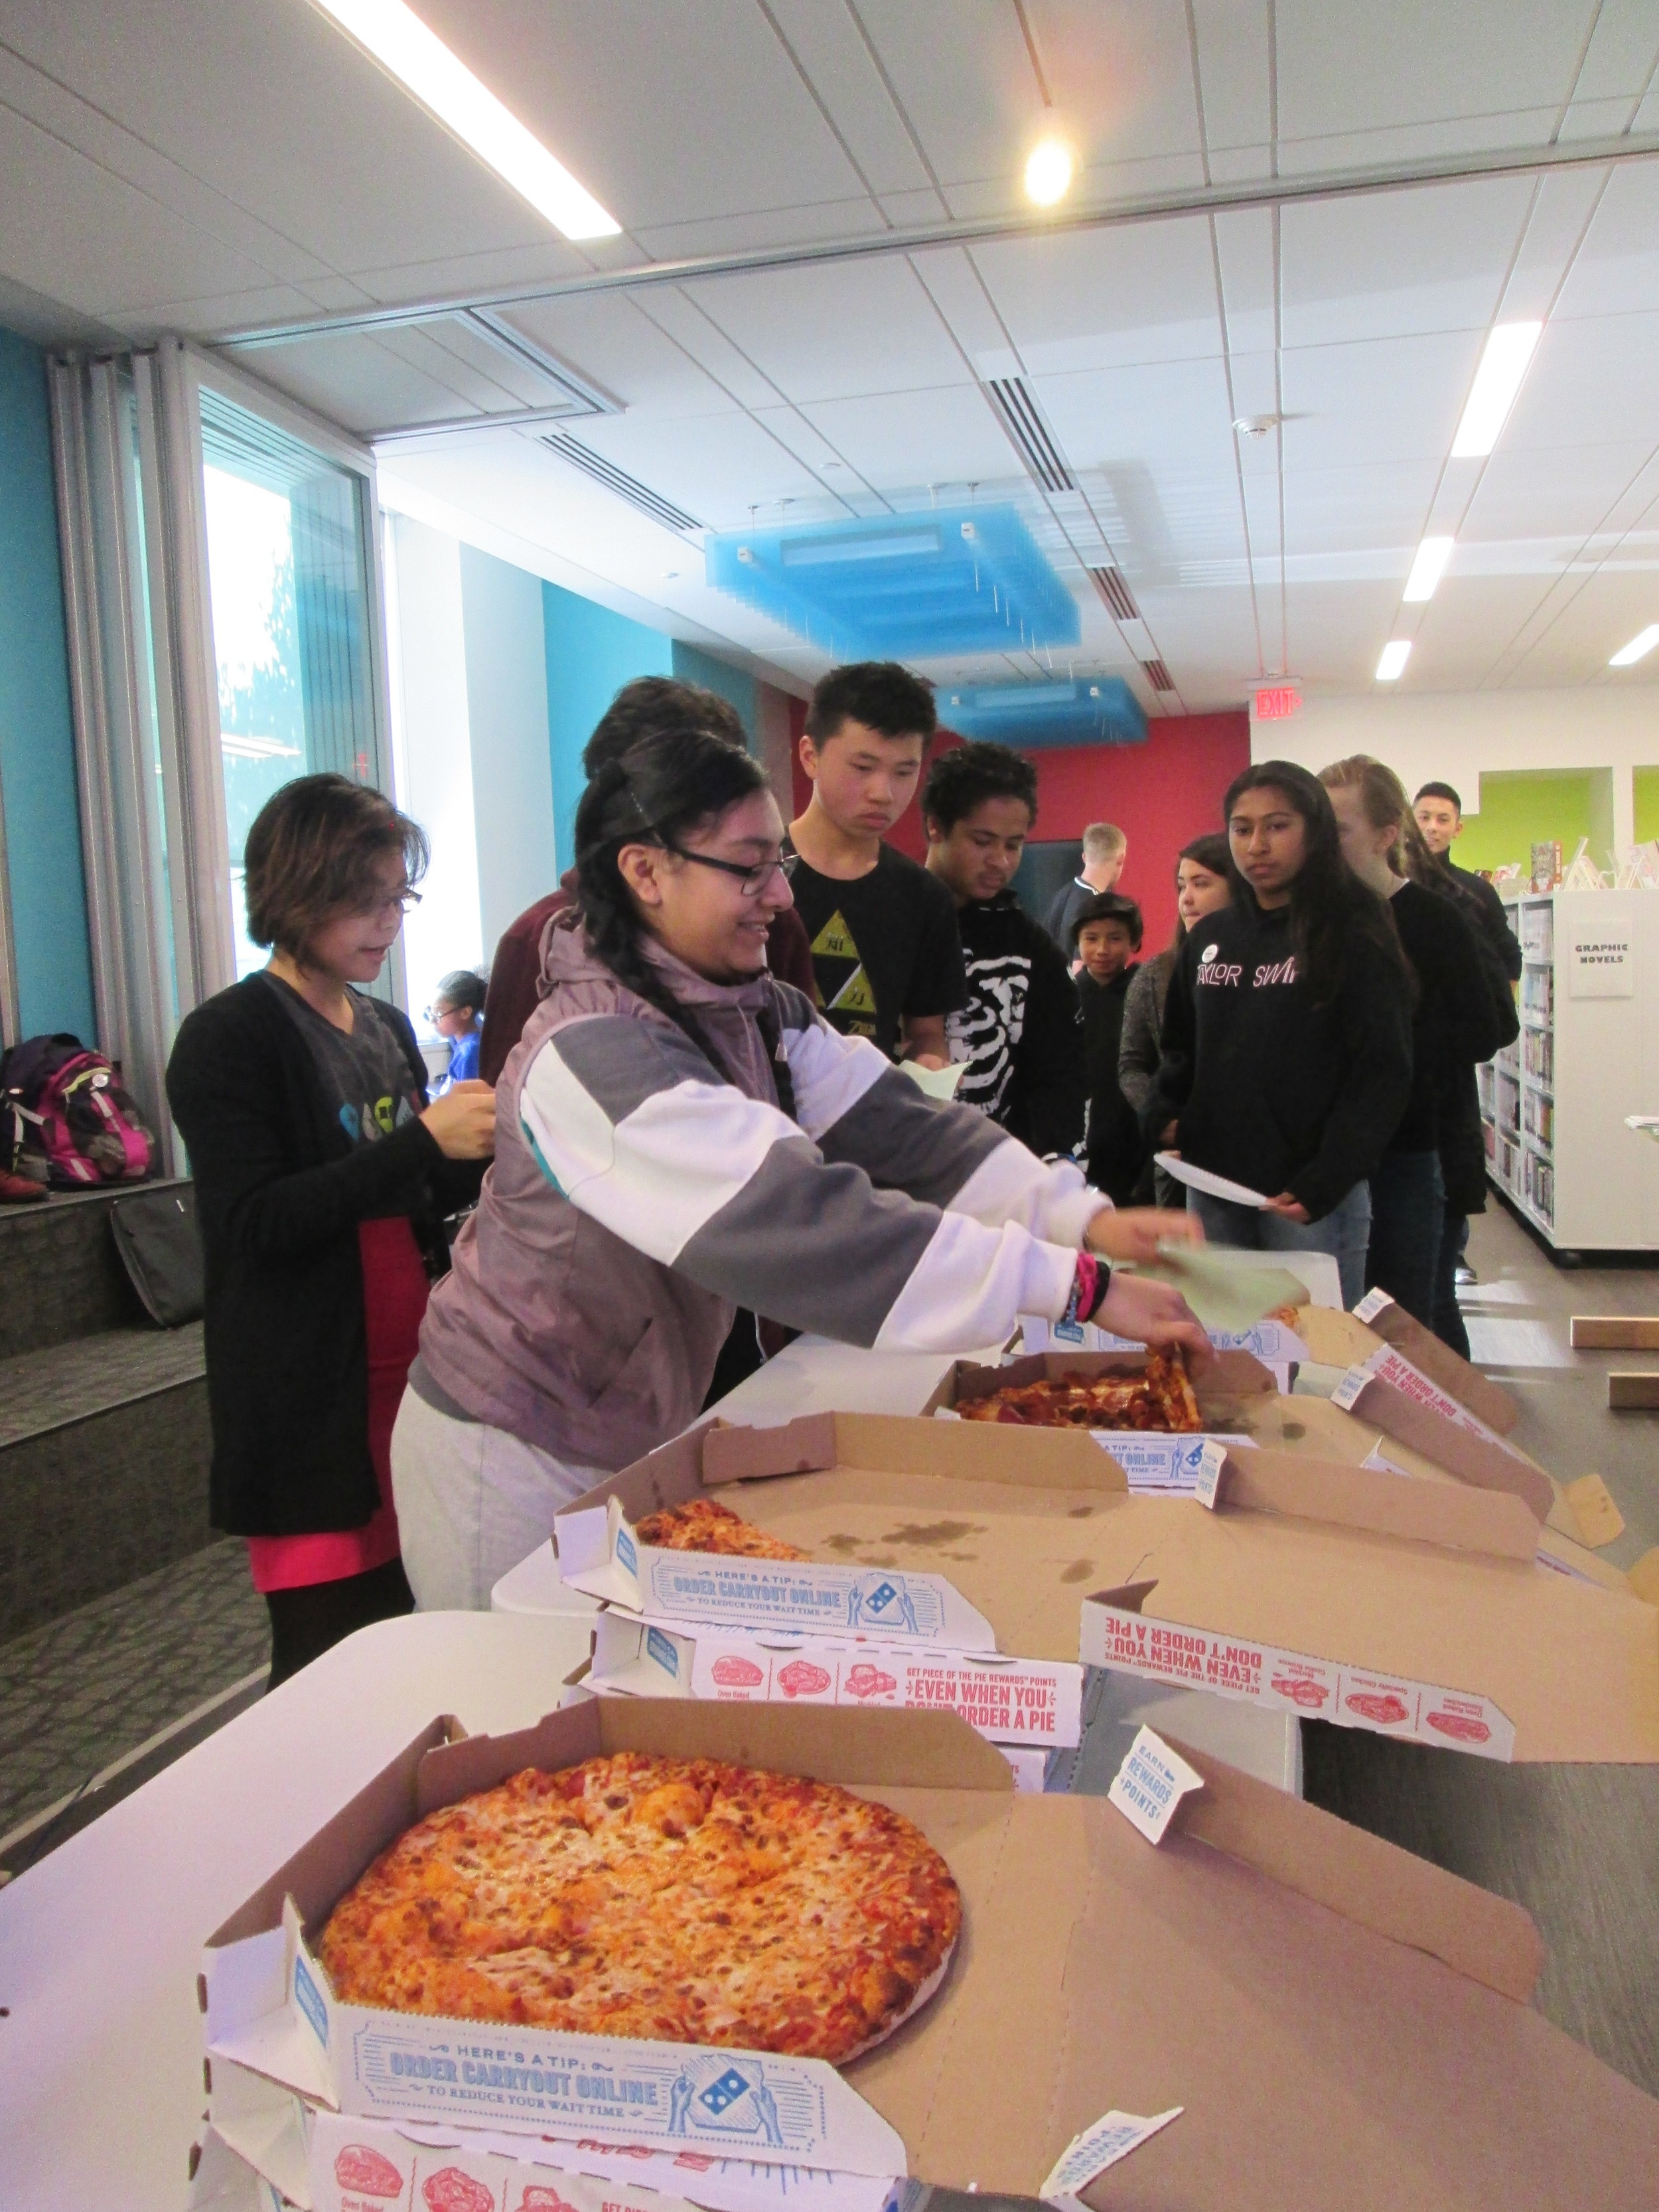 Hungry hackers @TheMixatSFPL: Pizza is going...